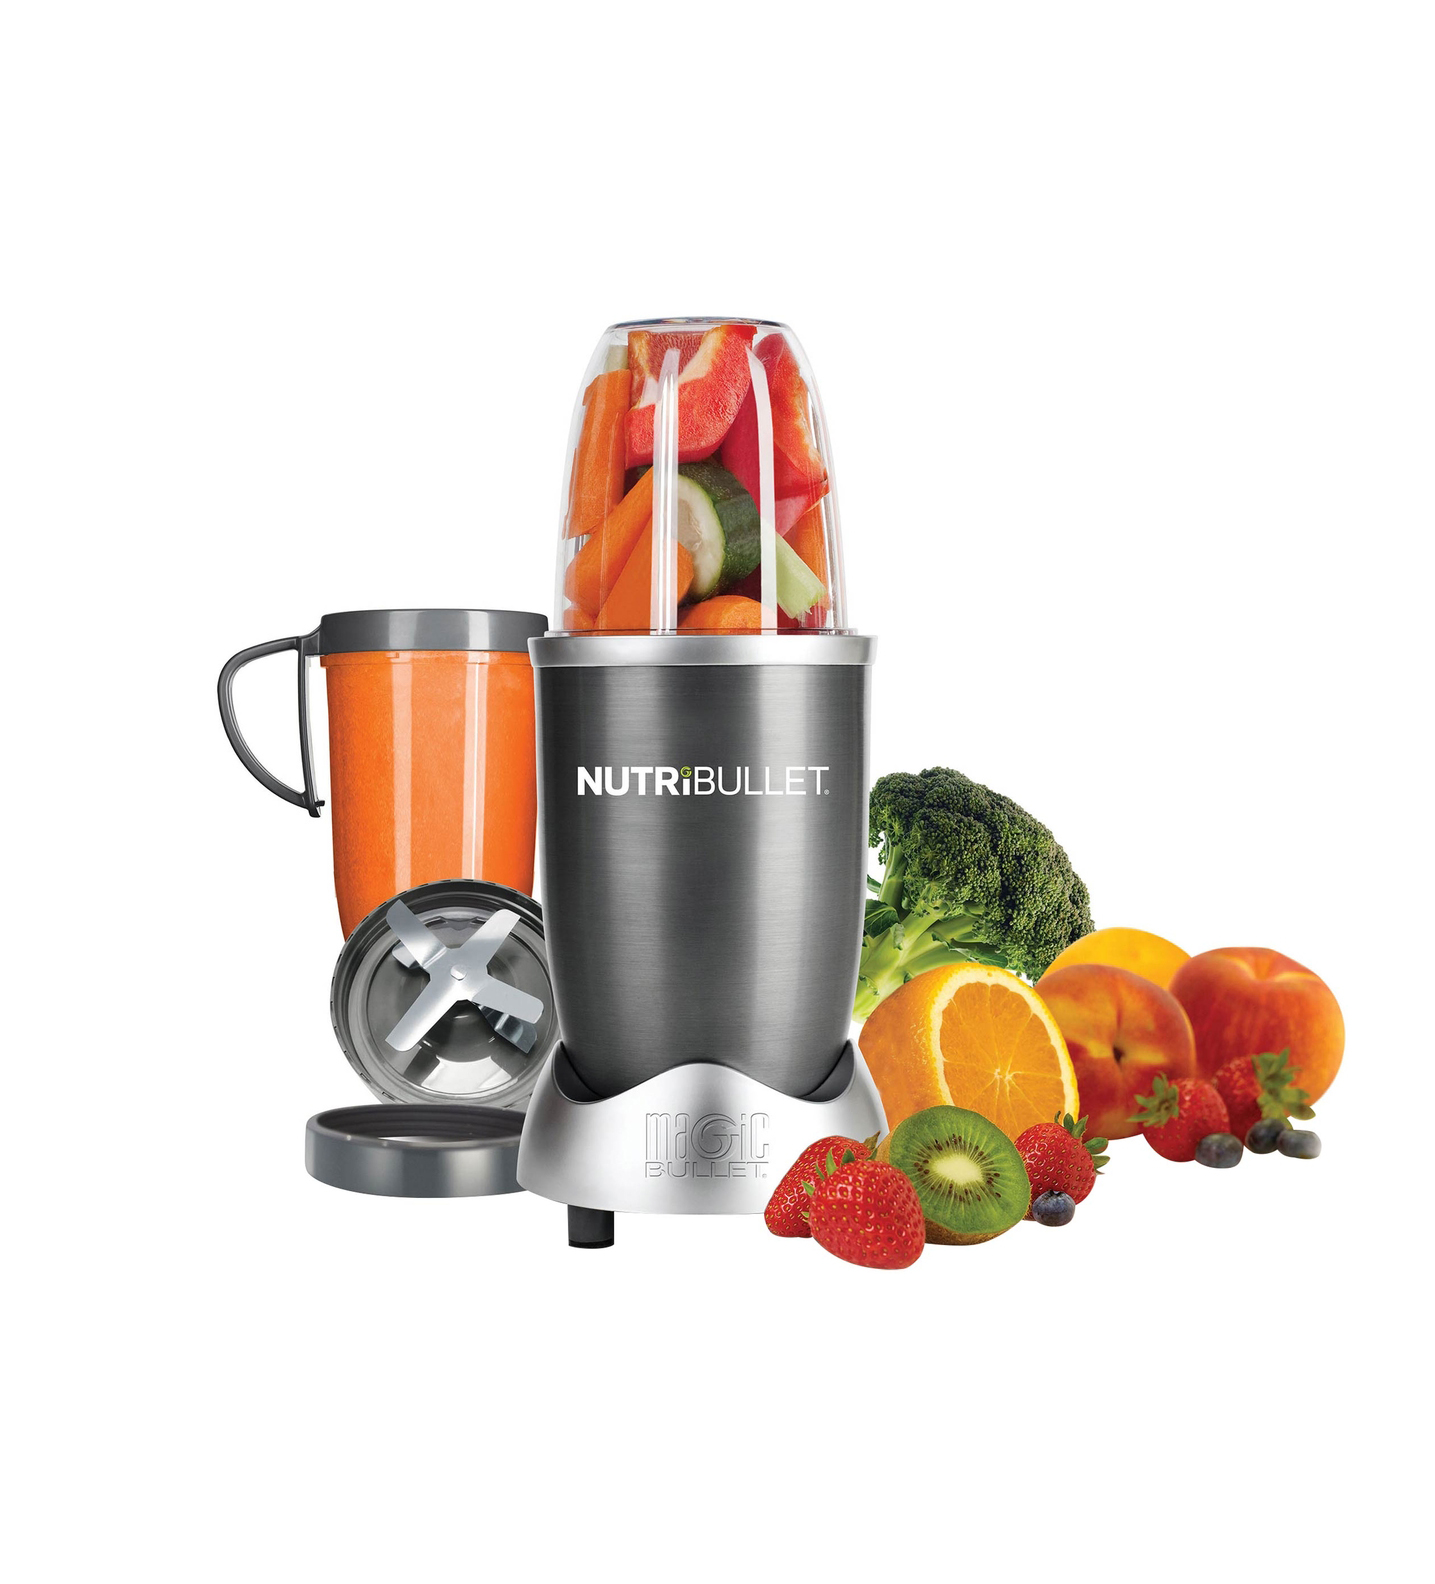 NutriBullet by MagicBullet